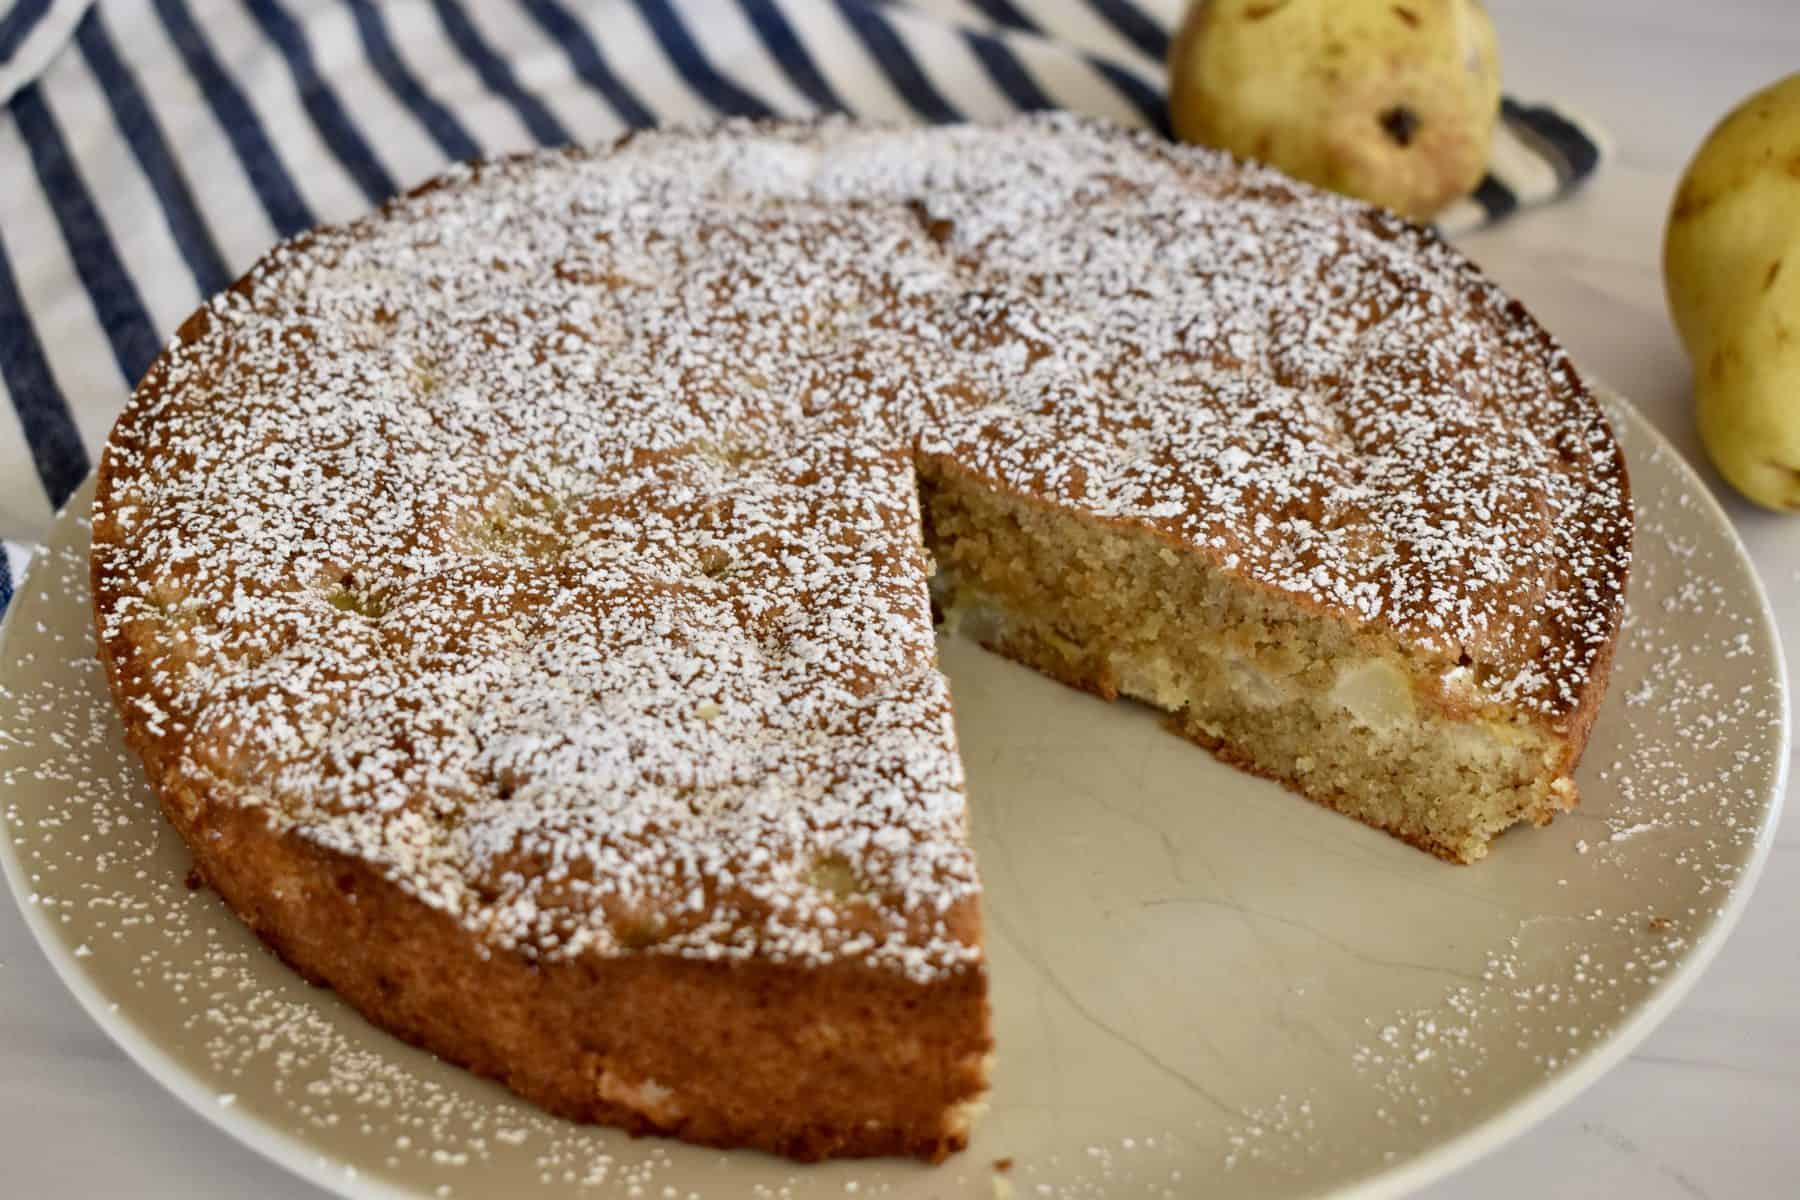 Almond Flour Pear Cake on a plate with a slice cut out of it.